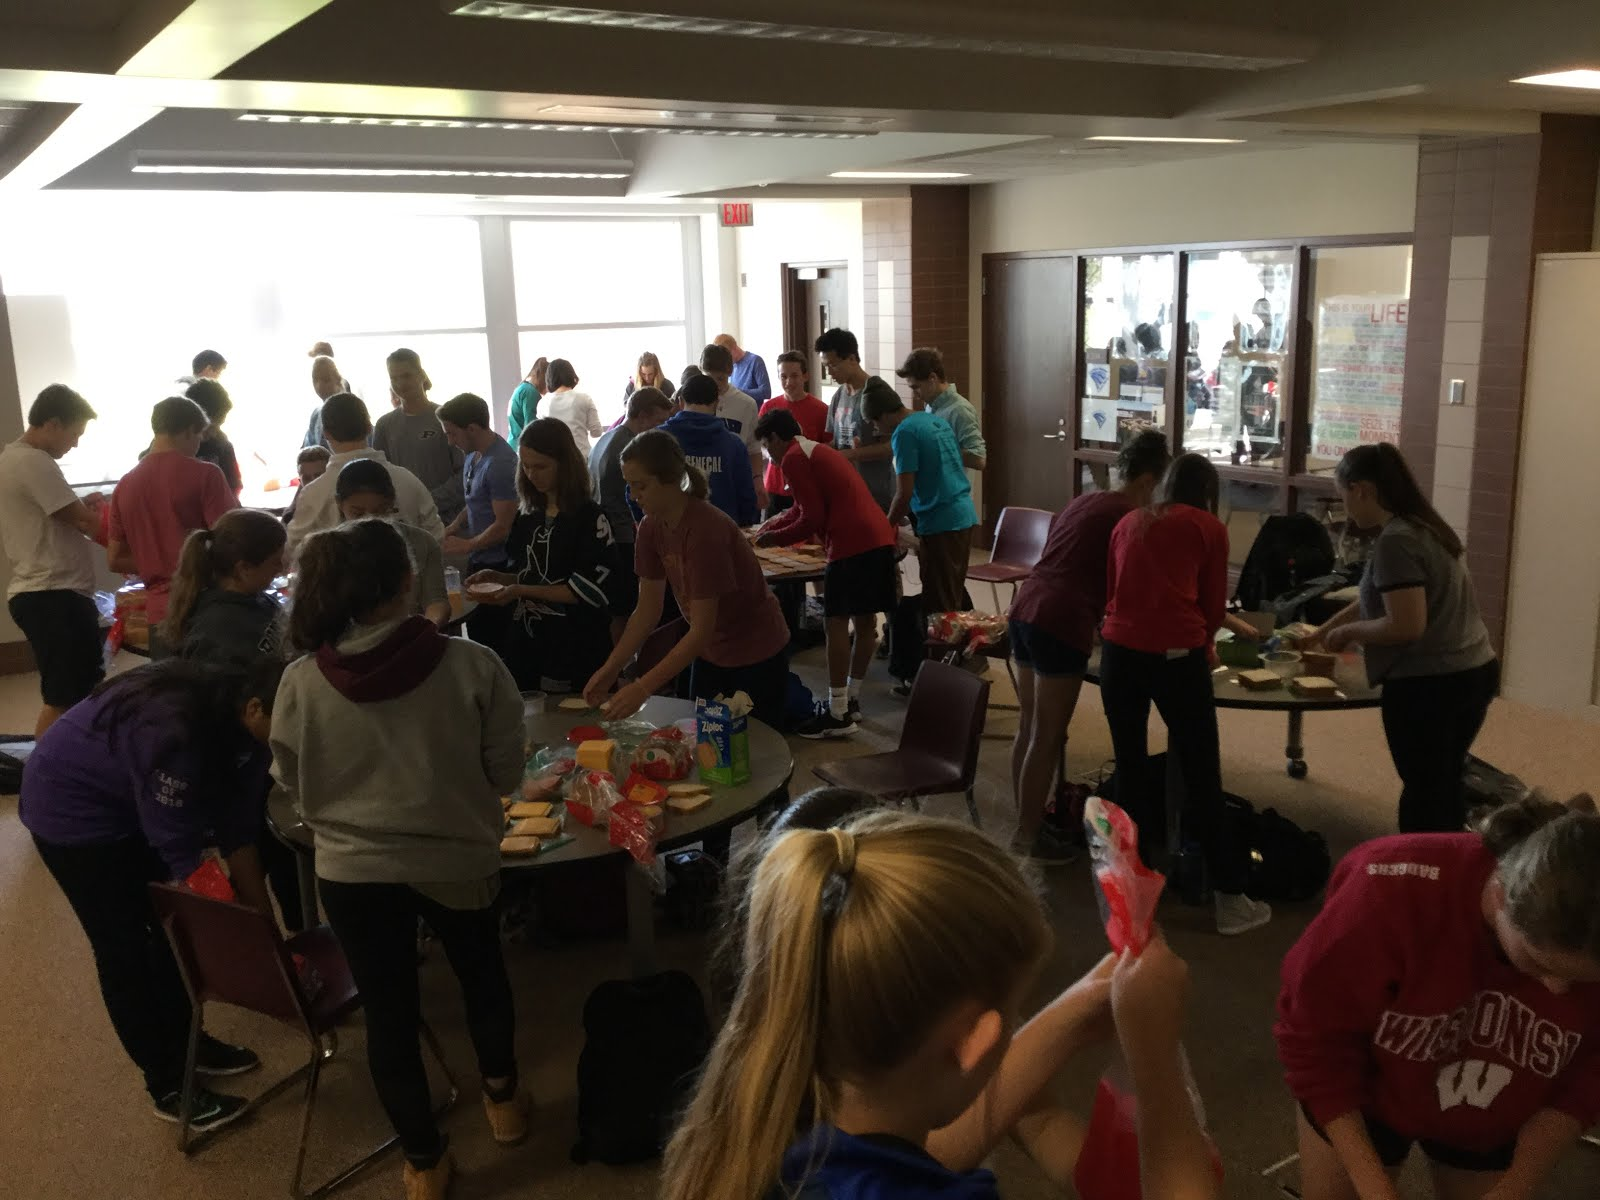 2017 Homecoming Service Project - Sandwich Project